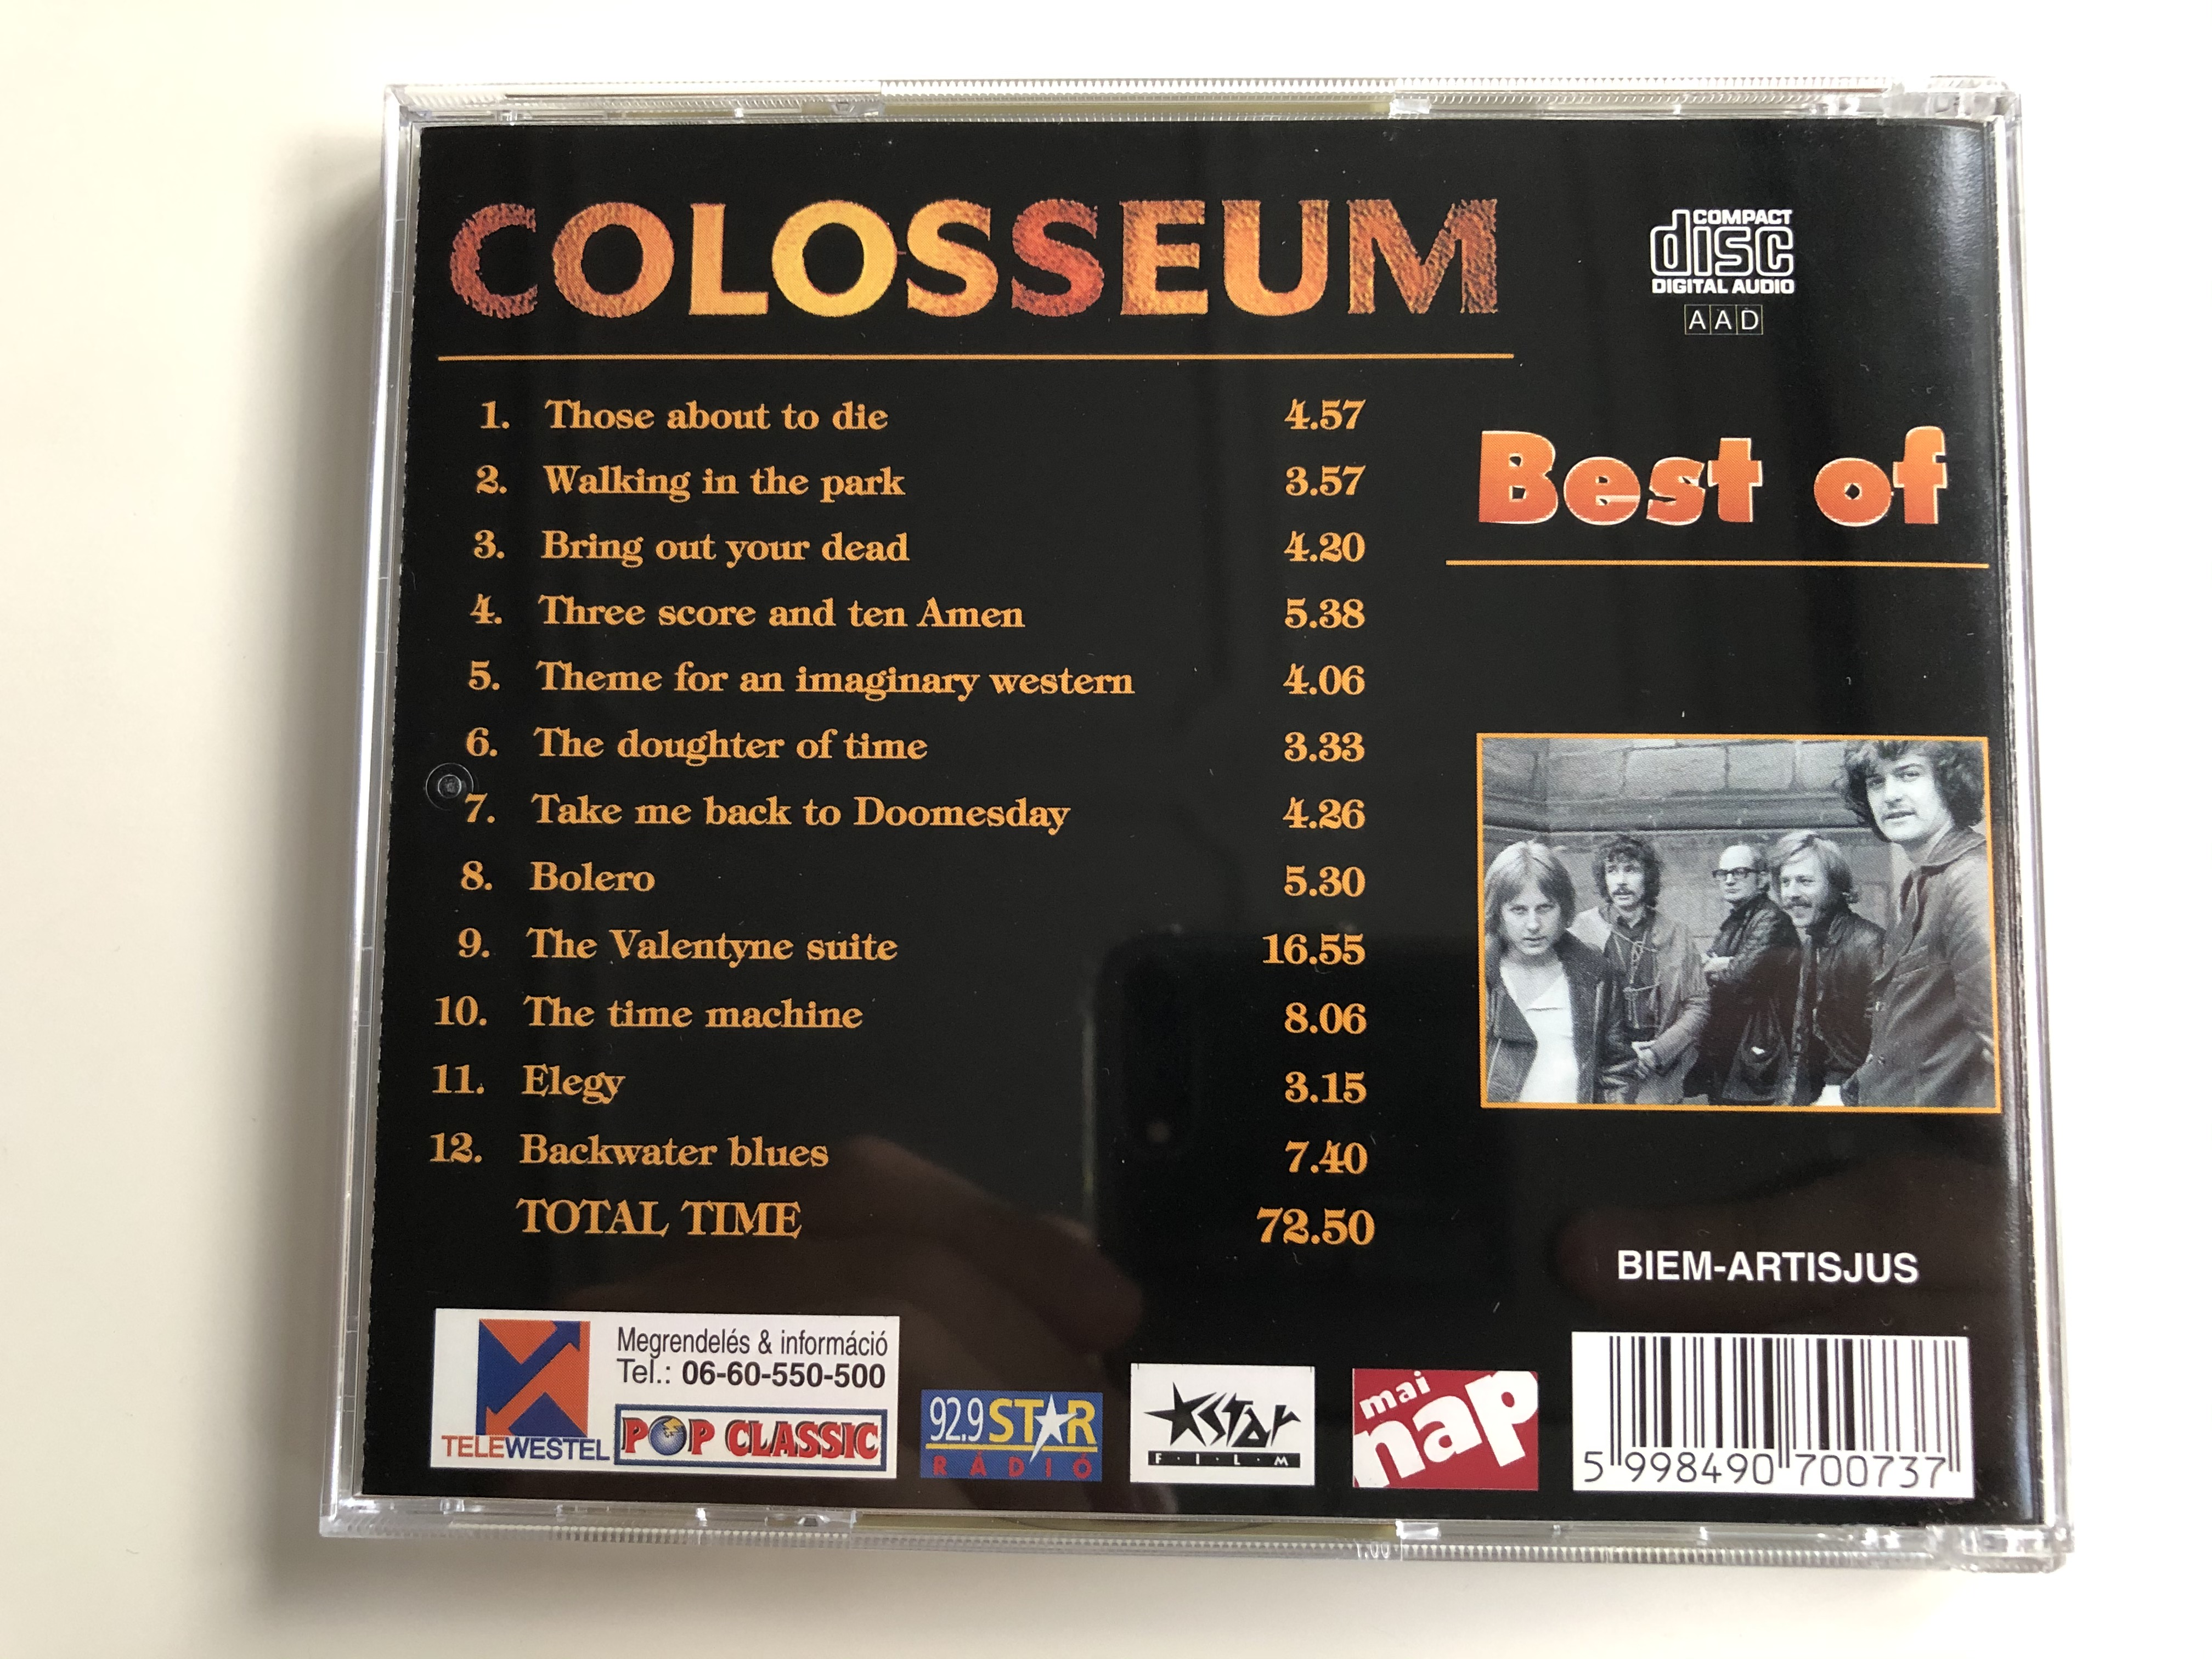 colosseum-best-of-total-time-72-50-pop-classic-euroton-audio-cd-eucd-0073-4-.jpg